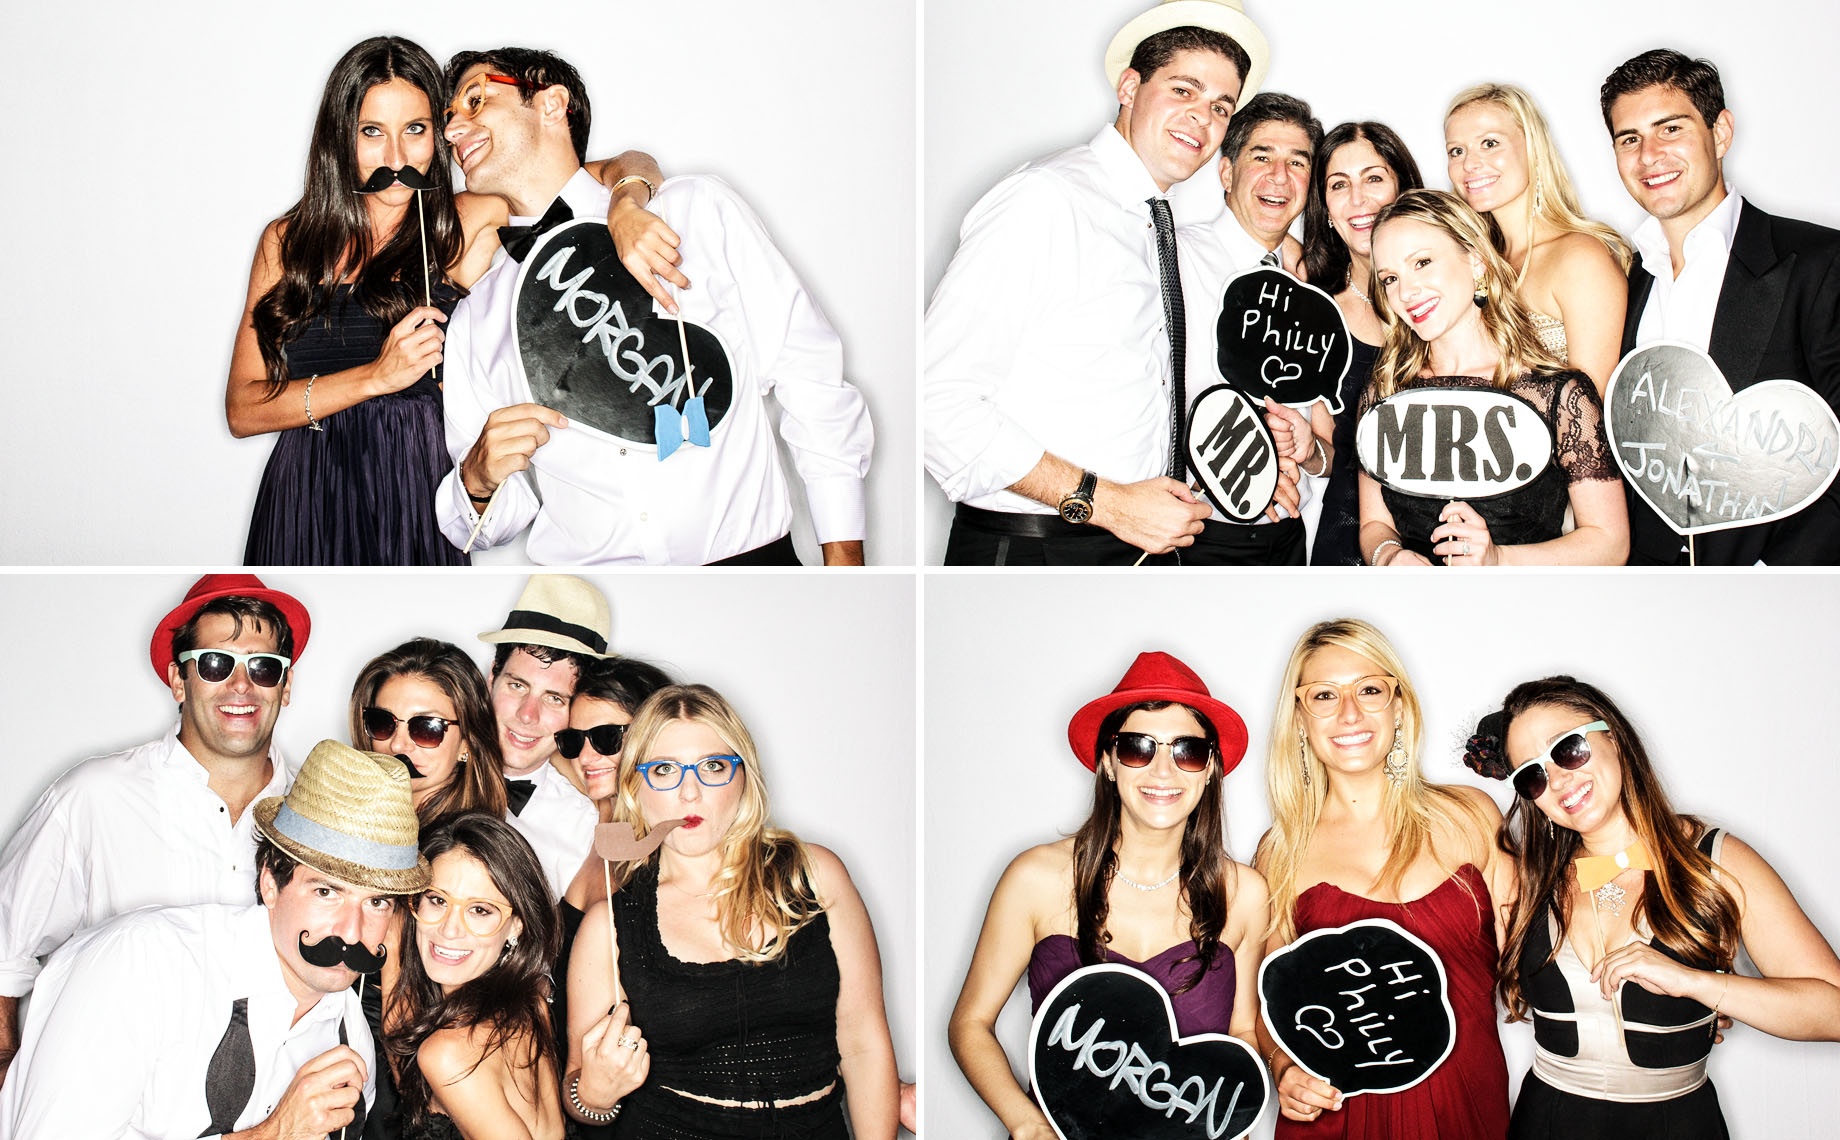 City-Touch-Wedding-Photo-Booth-Hire-2.jpg